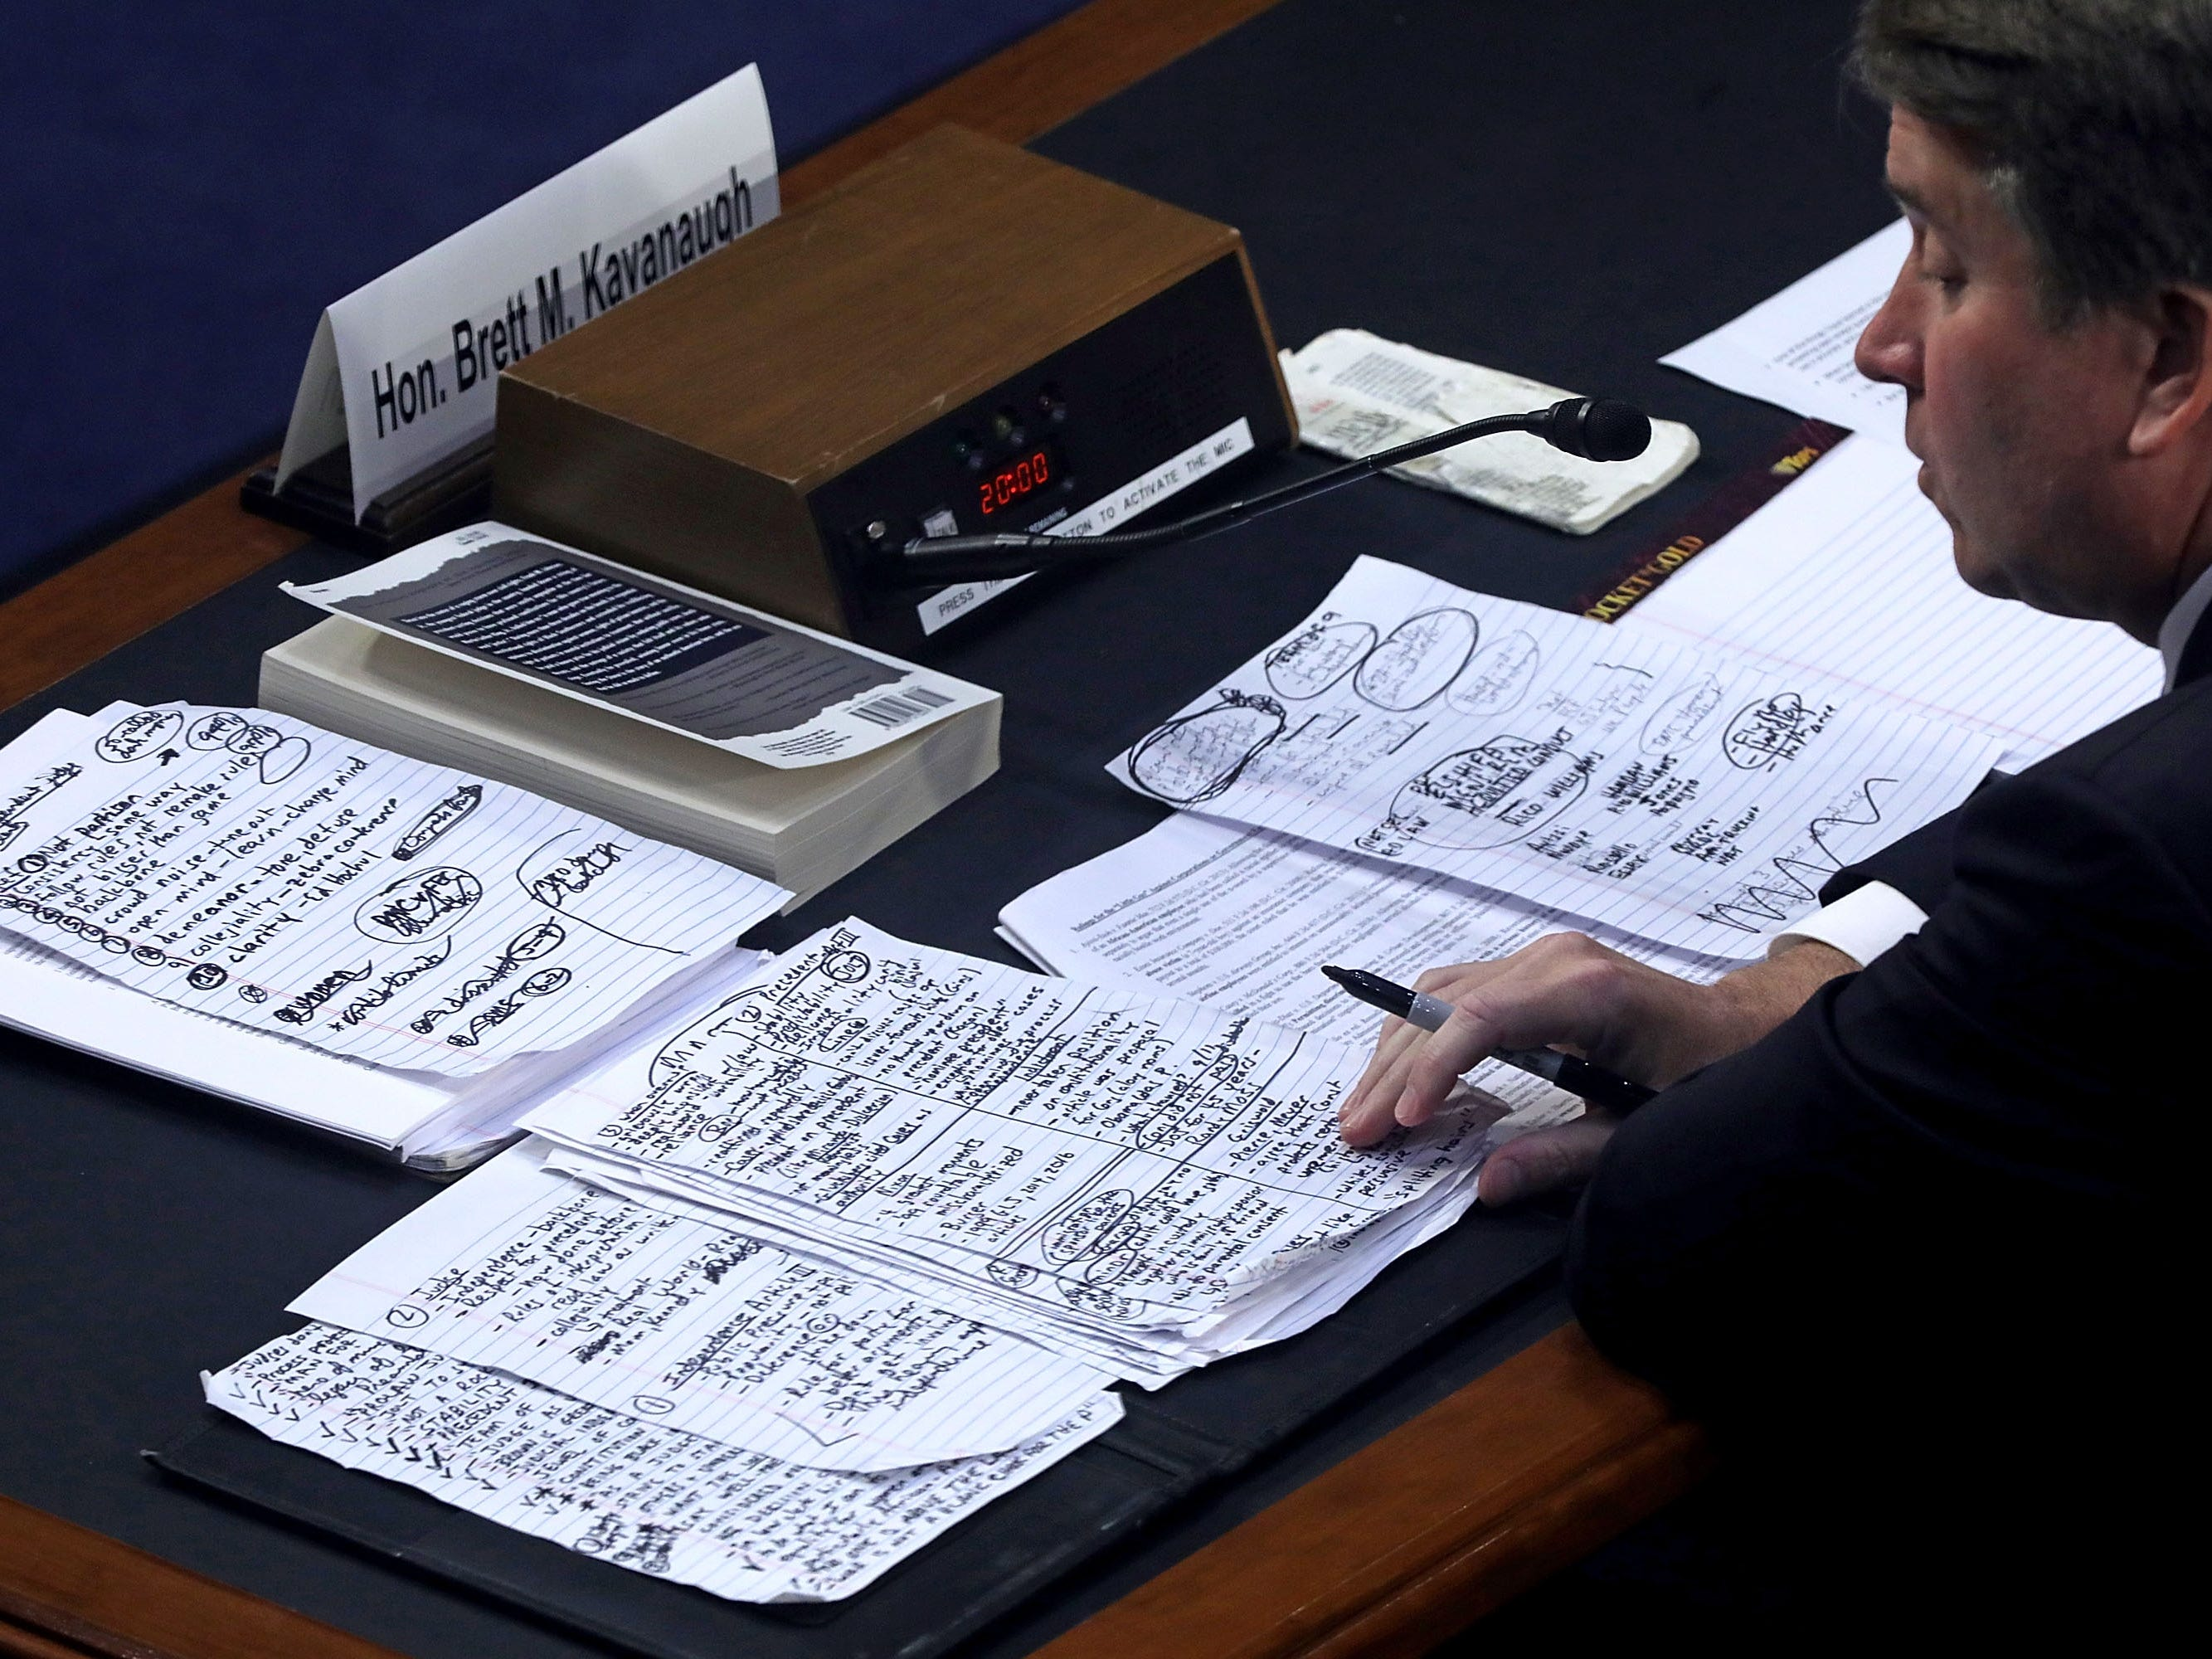 Supreme Court nominee Brett Kavanaugh looks over his notes while testifying before the Senate Judiciary Committee on the third day of his confirmation hearing in Washington, Sept. 6, 2018.